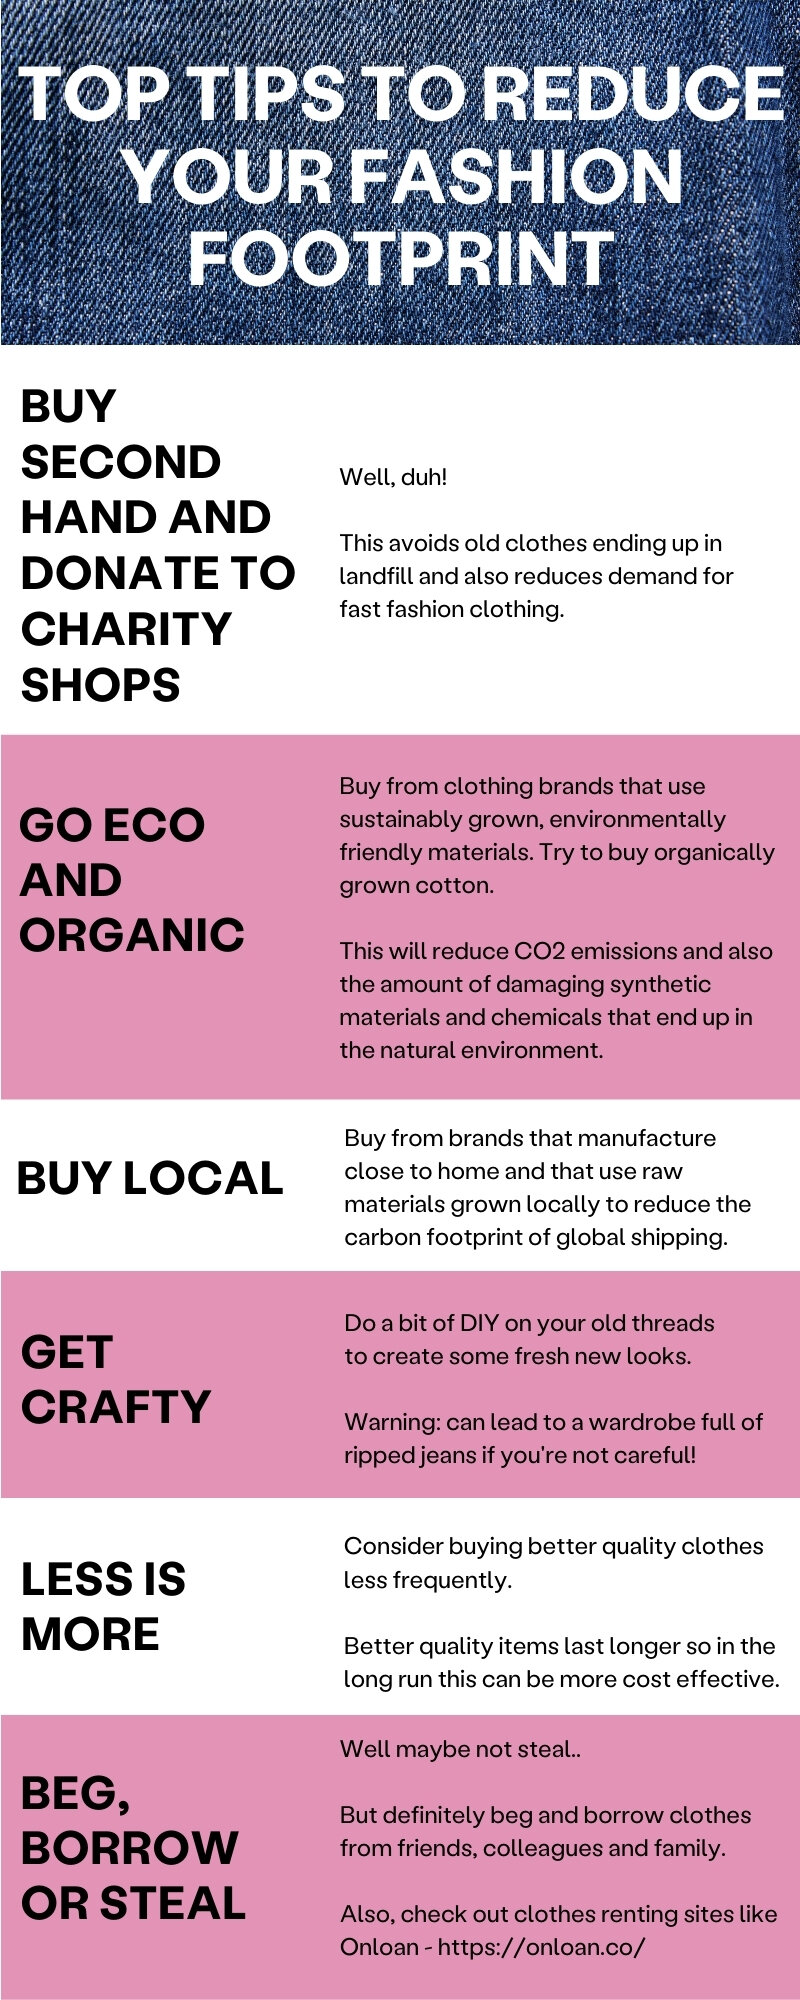 Top tips to reduce your fashion footprint.jpg